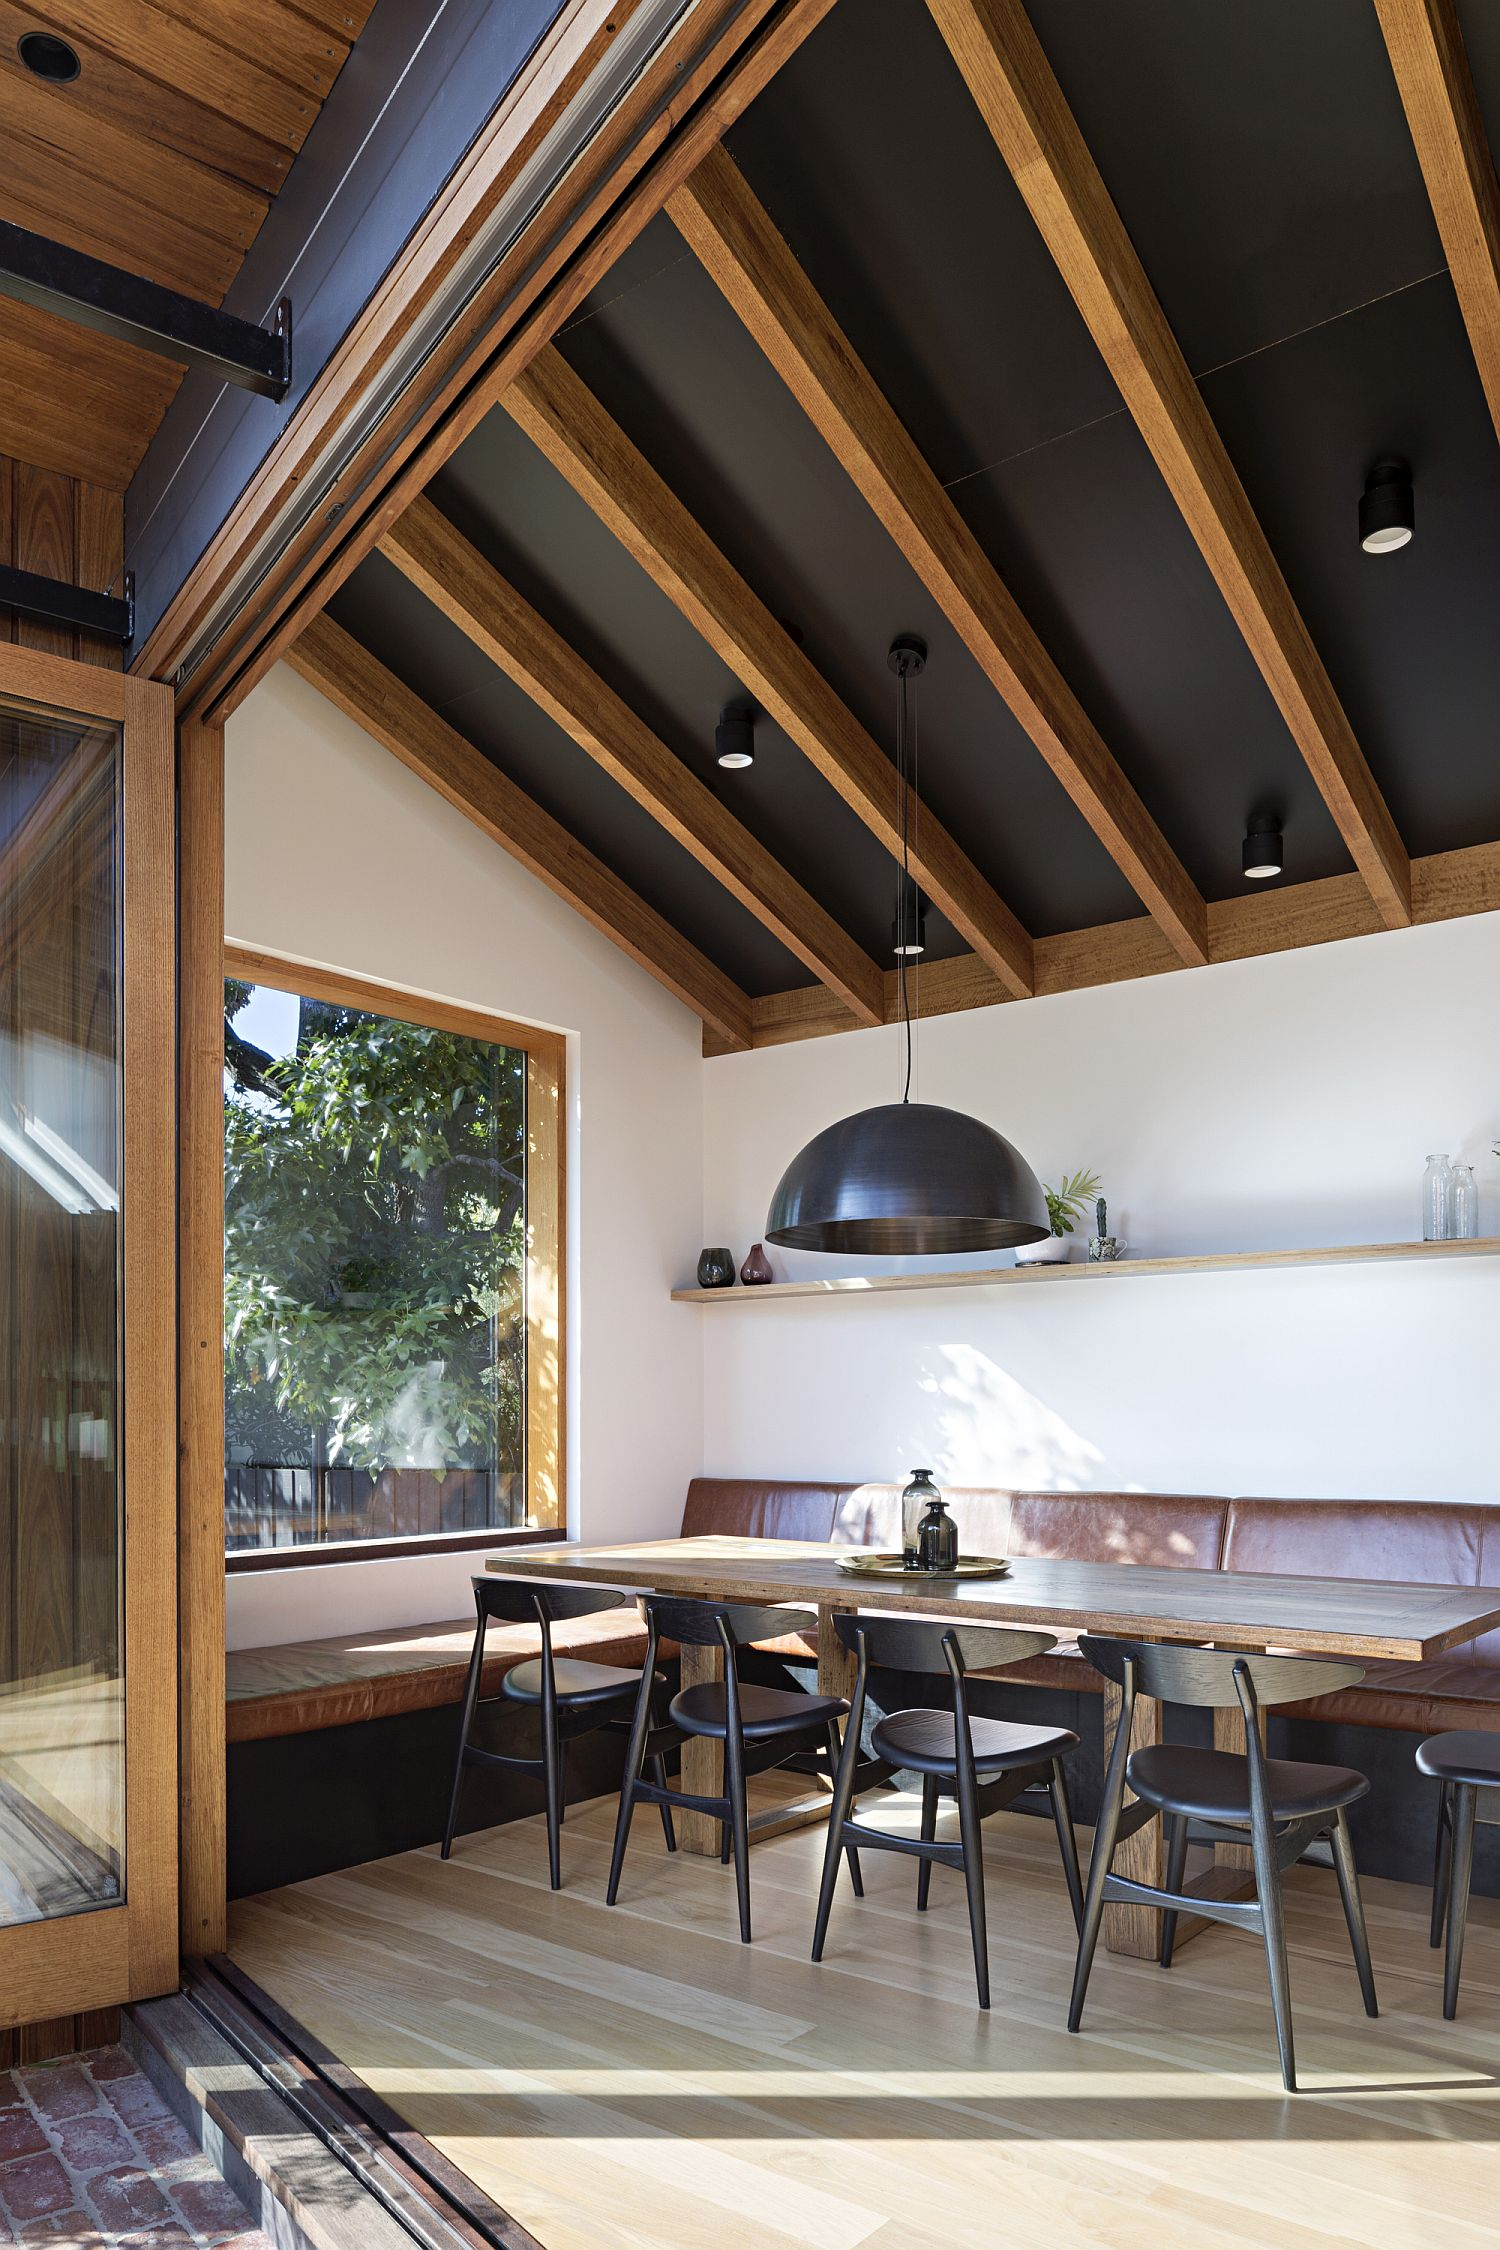 Lofty ceiling of the kitchen turns it into the central space of the house